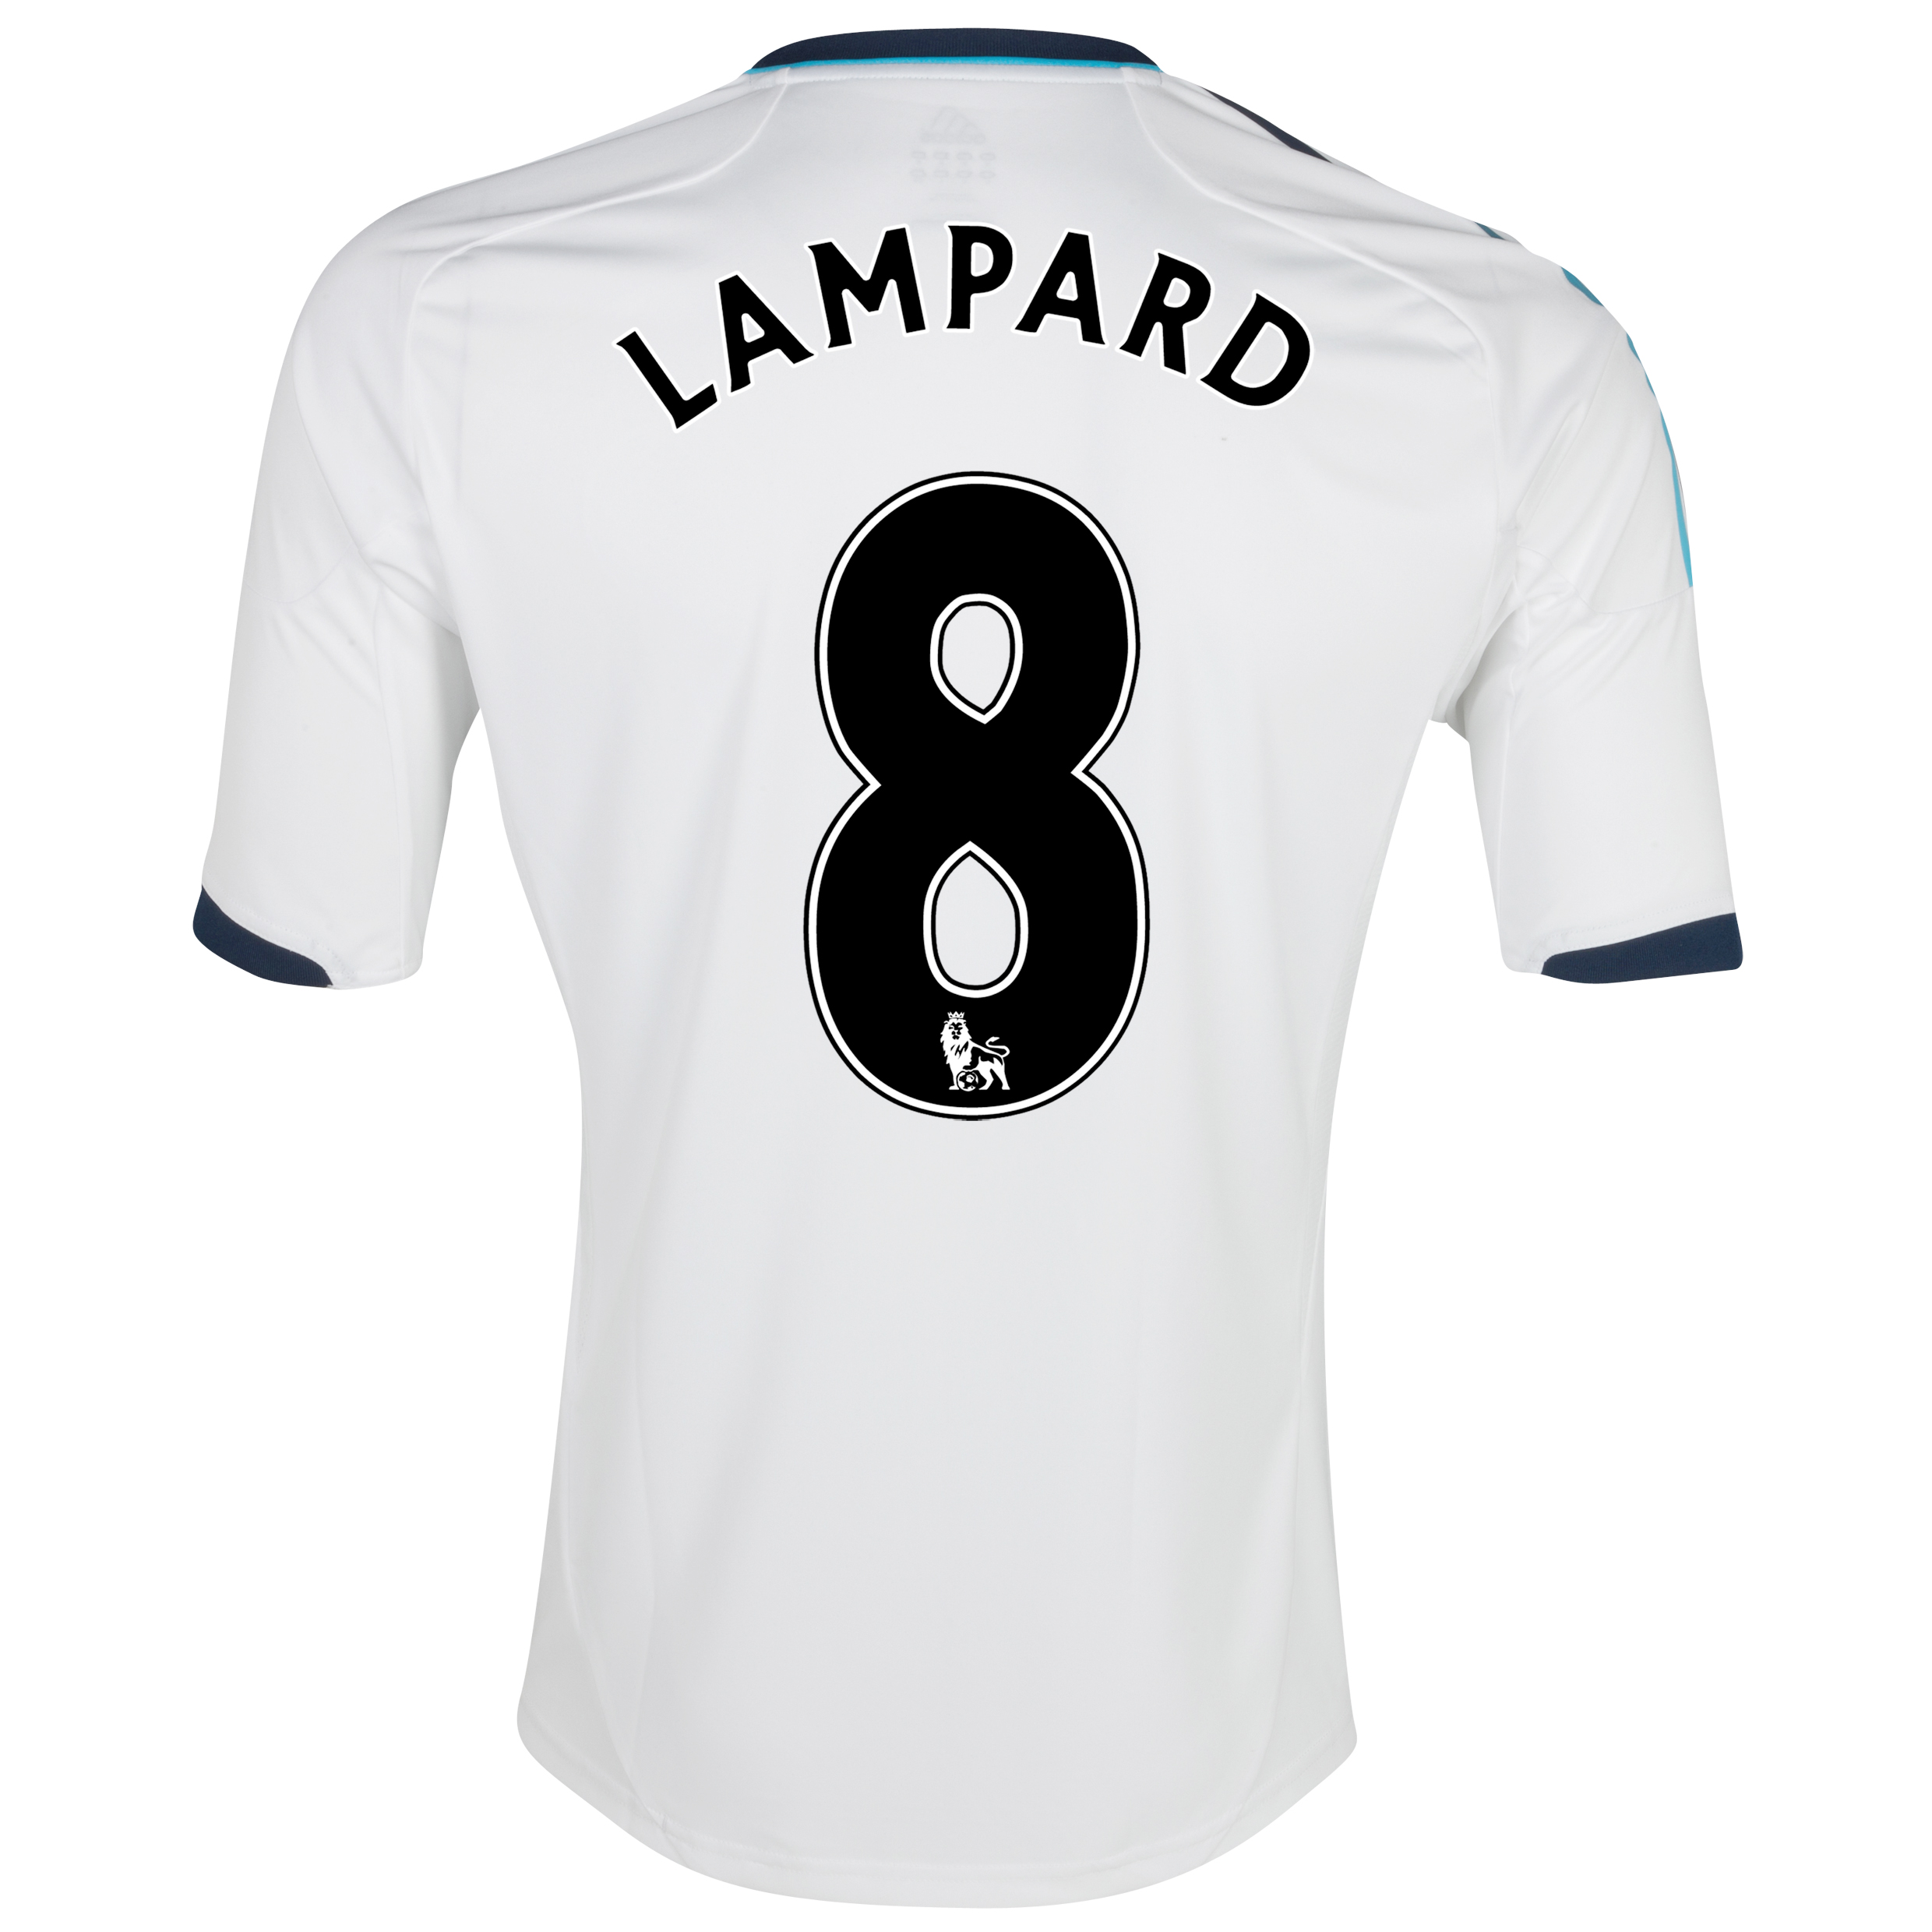 Chelsea Away Shirt 2012/13 - Youths with Lampard 8 printing